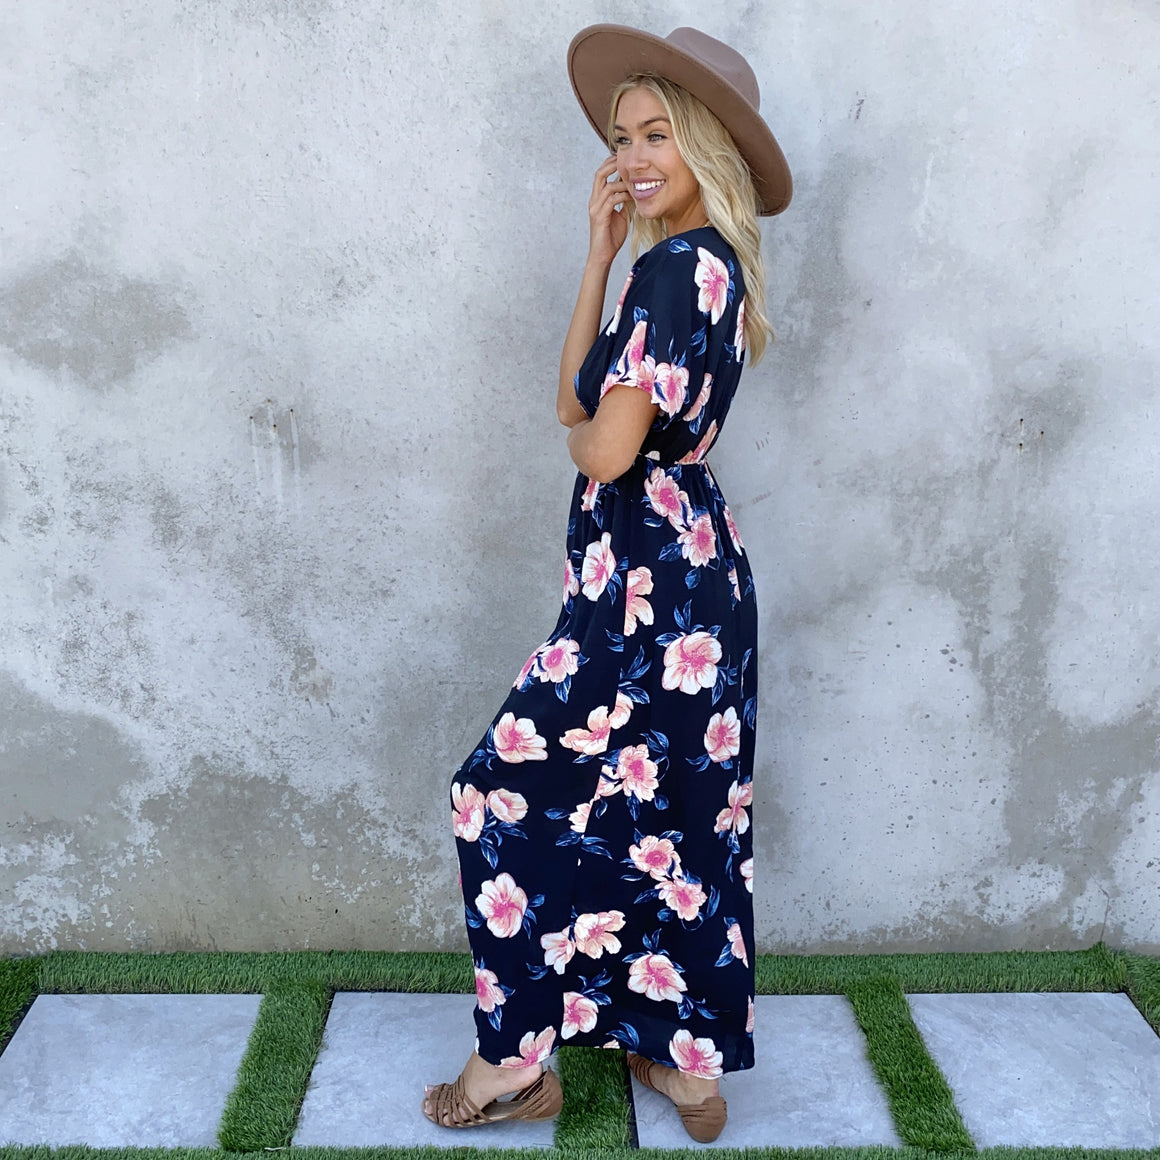 Gift Of Love Black Floral Print Maxi Dress - Dainty Hooligan